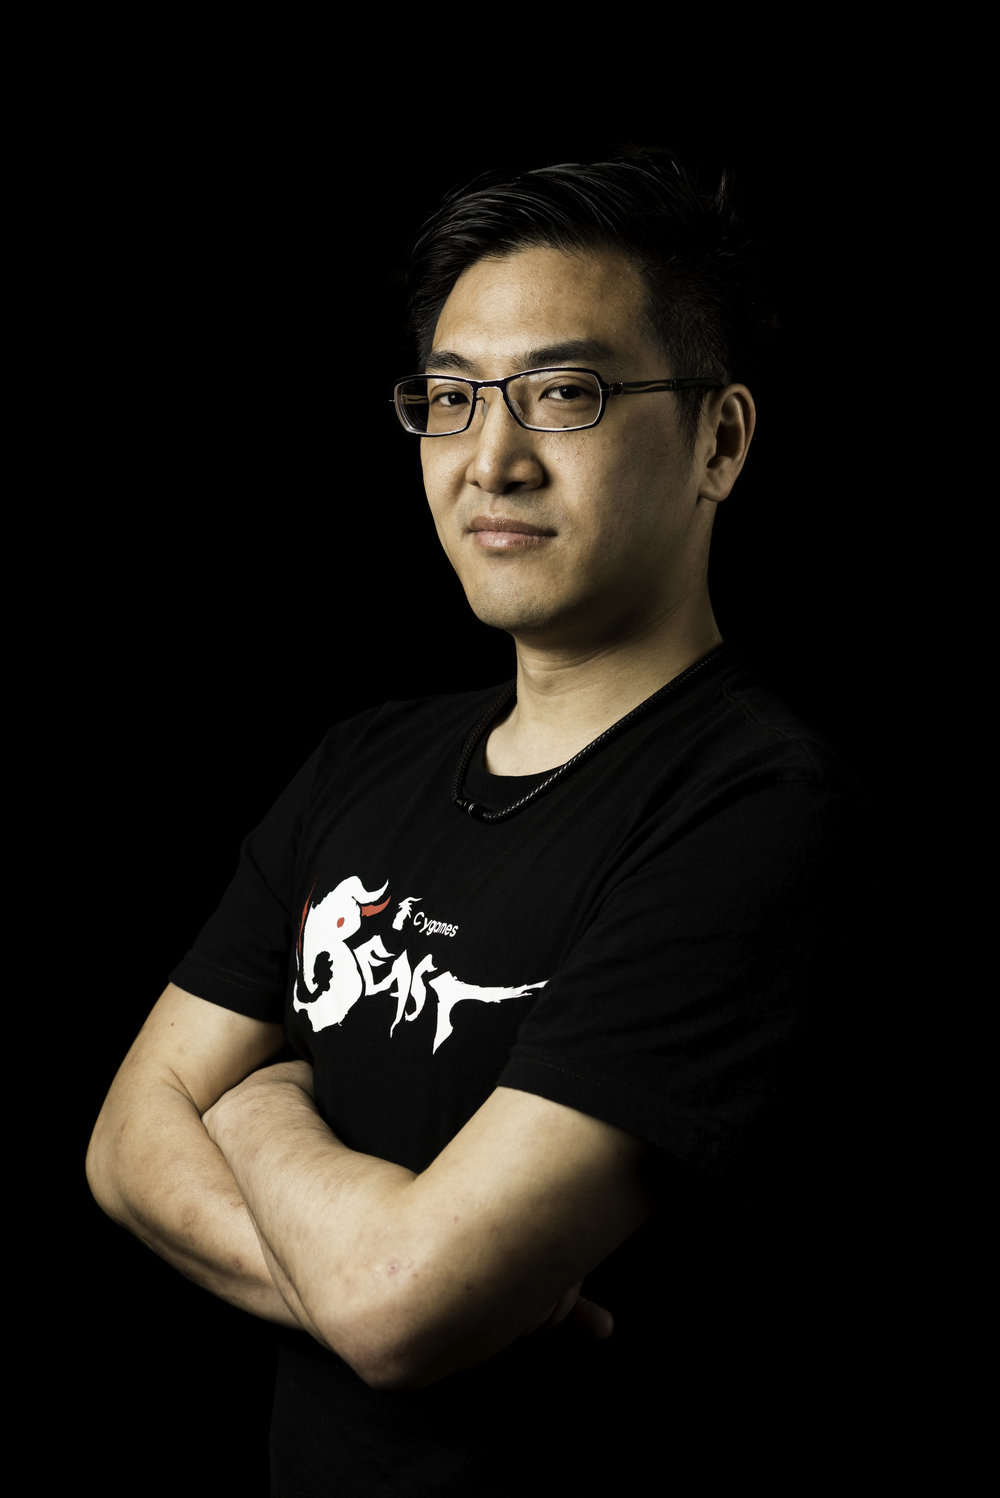 "GamerBee - Bruce ""GamerBee"" Hsiang first made a name for himself by infiltrating the EVO 2010 at 5thplace in Street Fighter IV, and he has since become a mainstay of the global pro scene. In 2012 and 2015, he finished at the 2ndat EVO, and he made his name and popularity unshakable.In his native Taiwan, his achievements and his wholesome personality have made him a national star and central figurehead within the community. His popular Twitch channelis a showcase of the growing Taiwanese FGC and Taiwanese lifestyle, and he continues to grow his fanbase through his streaming as well.Twitter @GamerBeeTWFacebook @GamerBeeTWInstagram @GamerBeeTwitch @GamerBee"